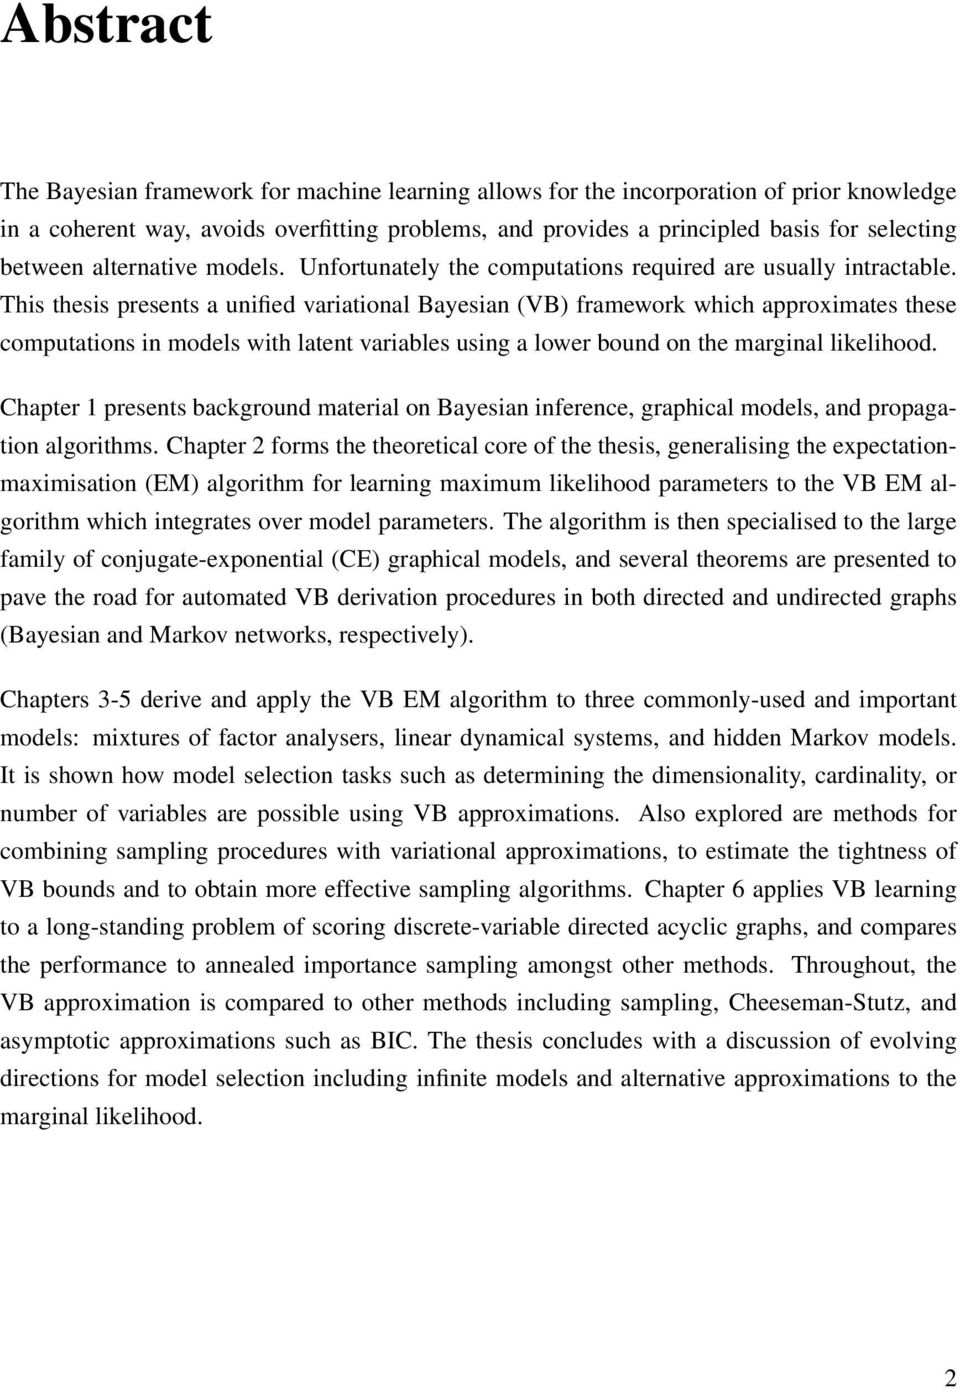 This thesis presents a unified variational Bayesian (VB) framework which approximates these computations in models with latent variables using a lower bound on the marginal likelihood.